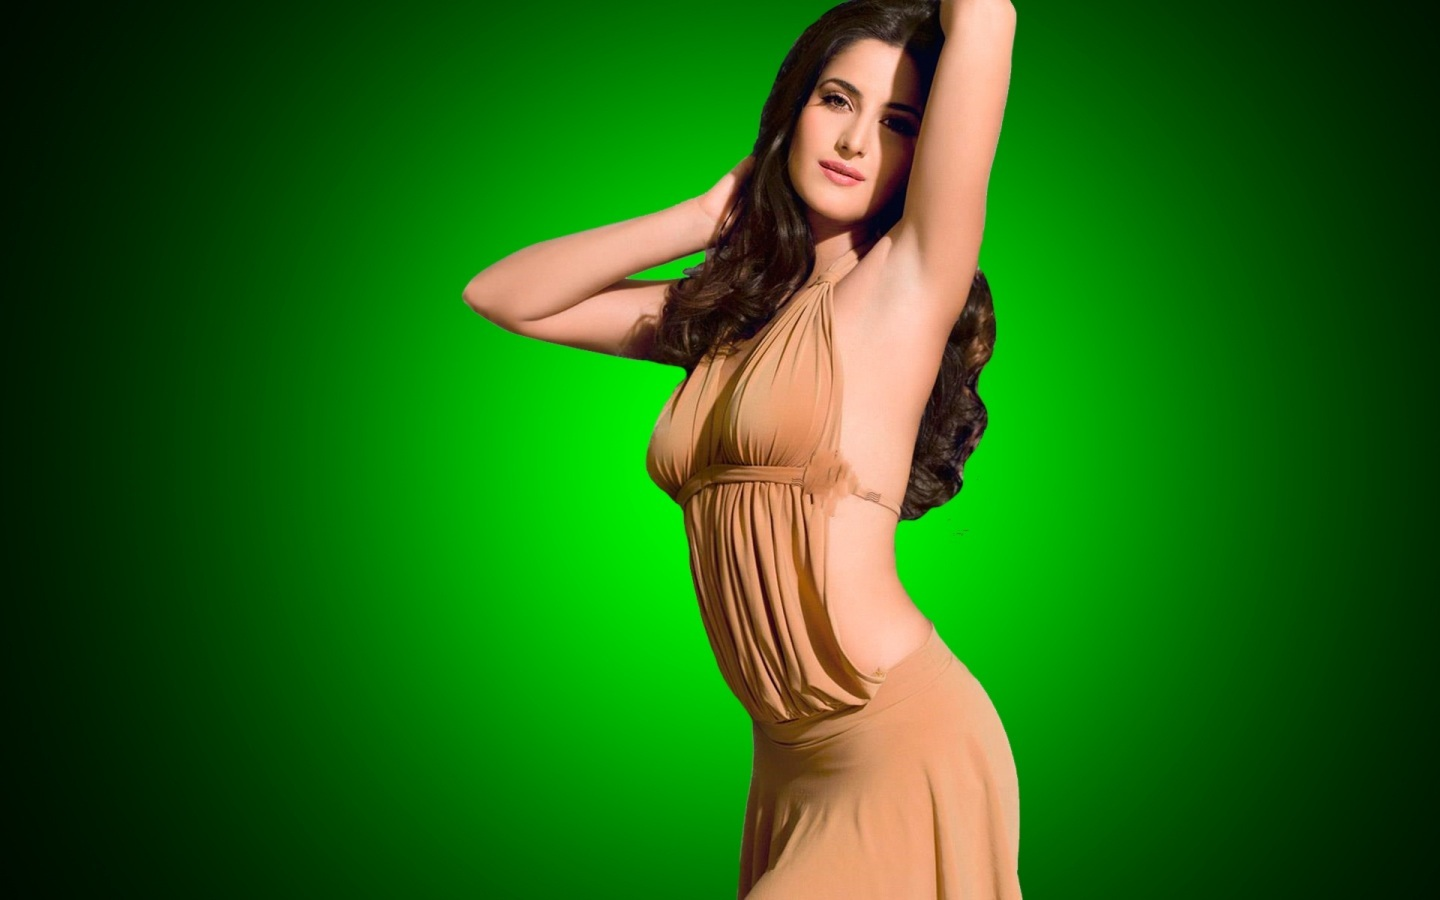 Katrina Kaif Hot Wallpaper Katrina Kaif